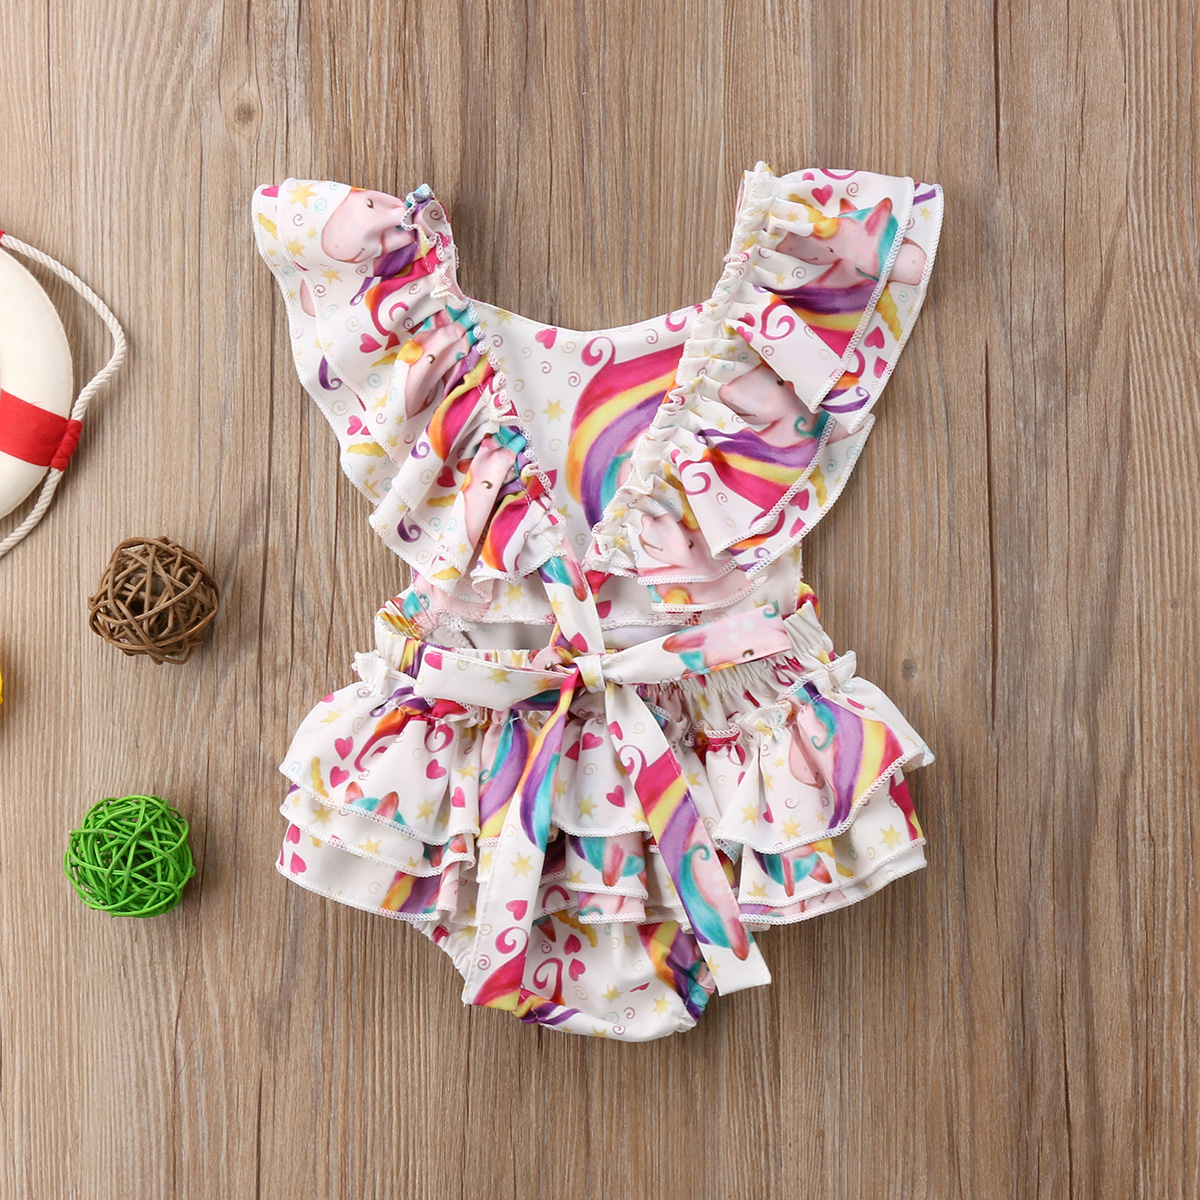 NWT Kid Baby Girl Floral Romper Dress Bodysuit Jumpsuit Outfit Clothes One-piece